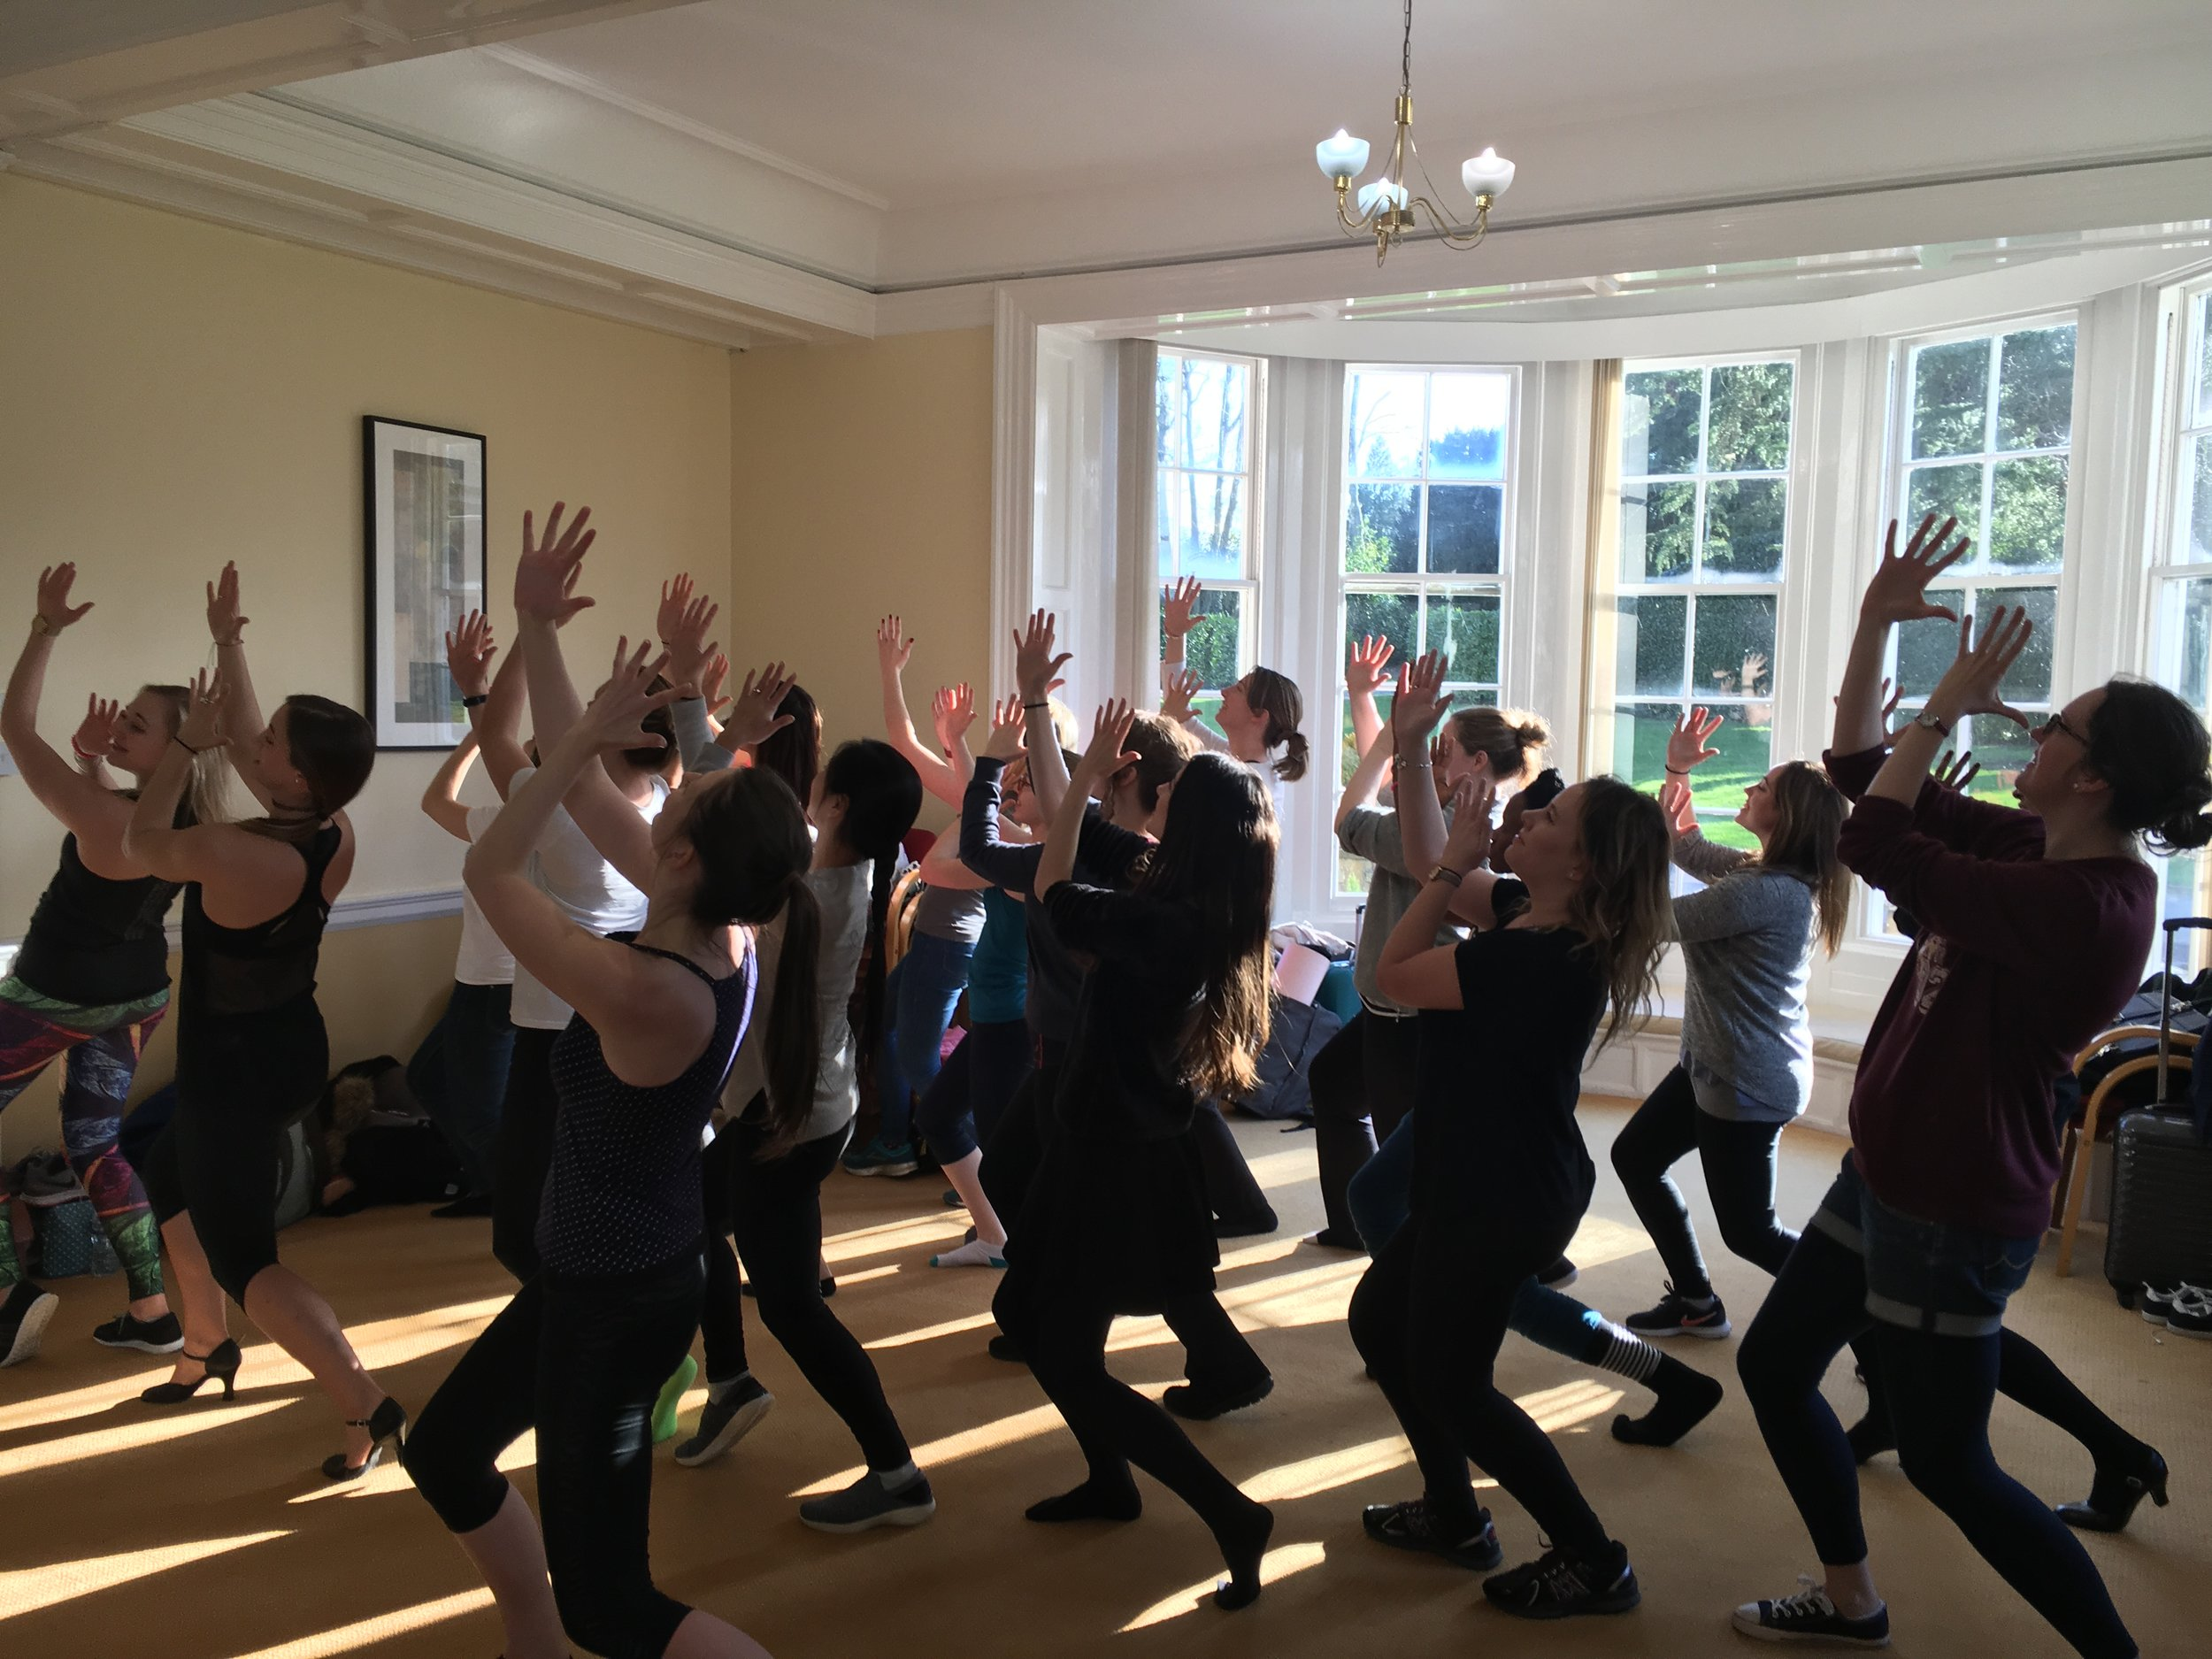 DANCE CLASS AT OUR 2018 AWAY WEEKEND